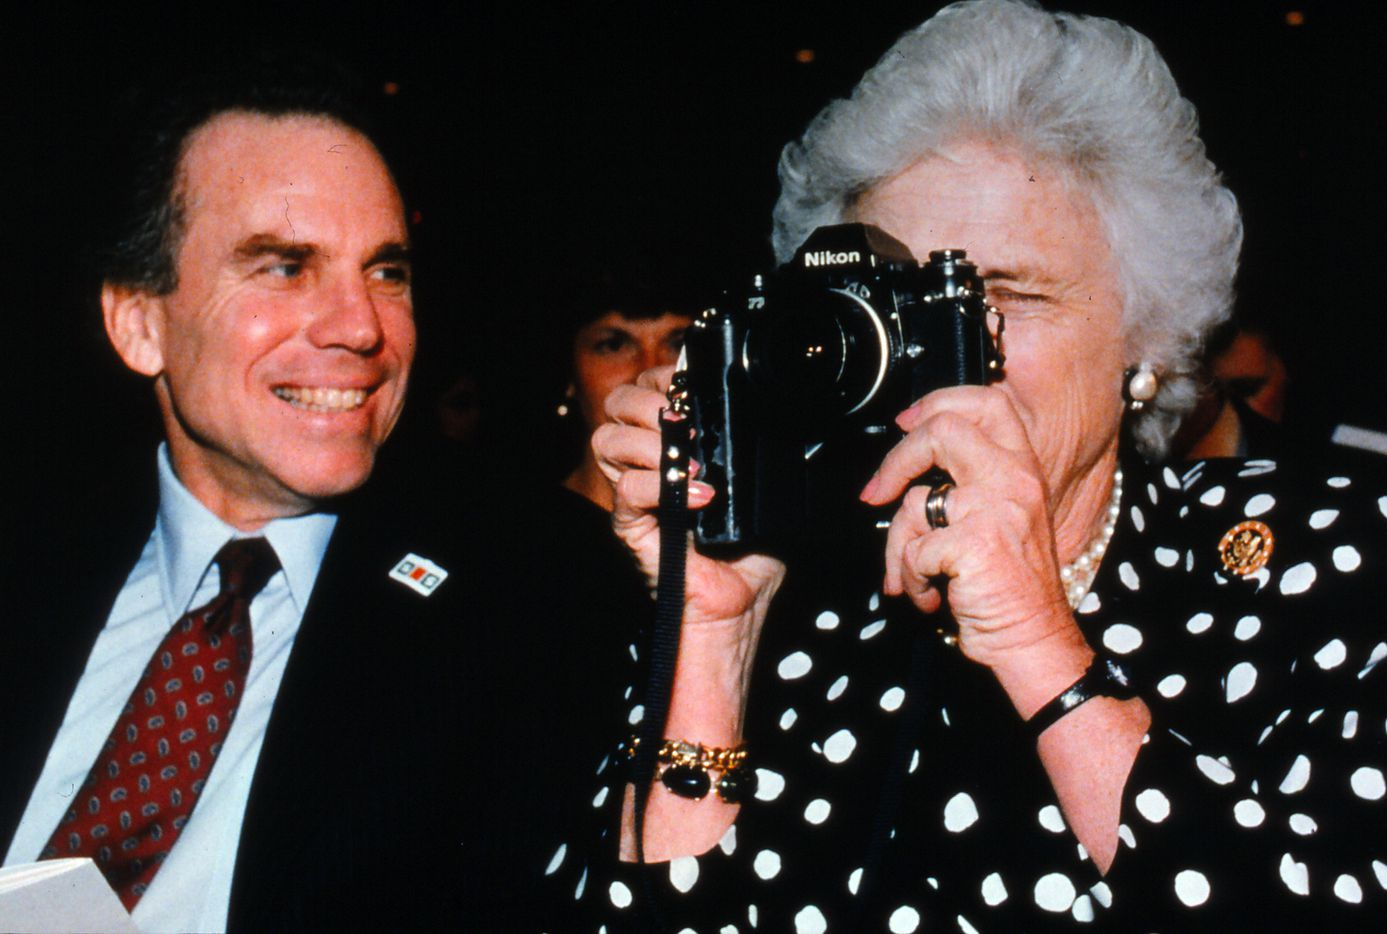 In 1988, Barbara Bush held the camera of a Dallas Morning News photographer, while sitting next to Roger Staubach during a debate at Southern Methodist University.